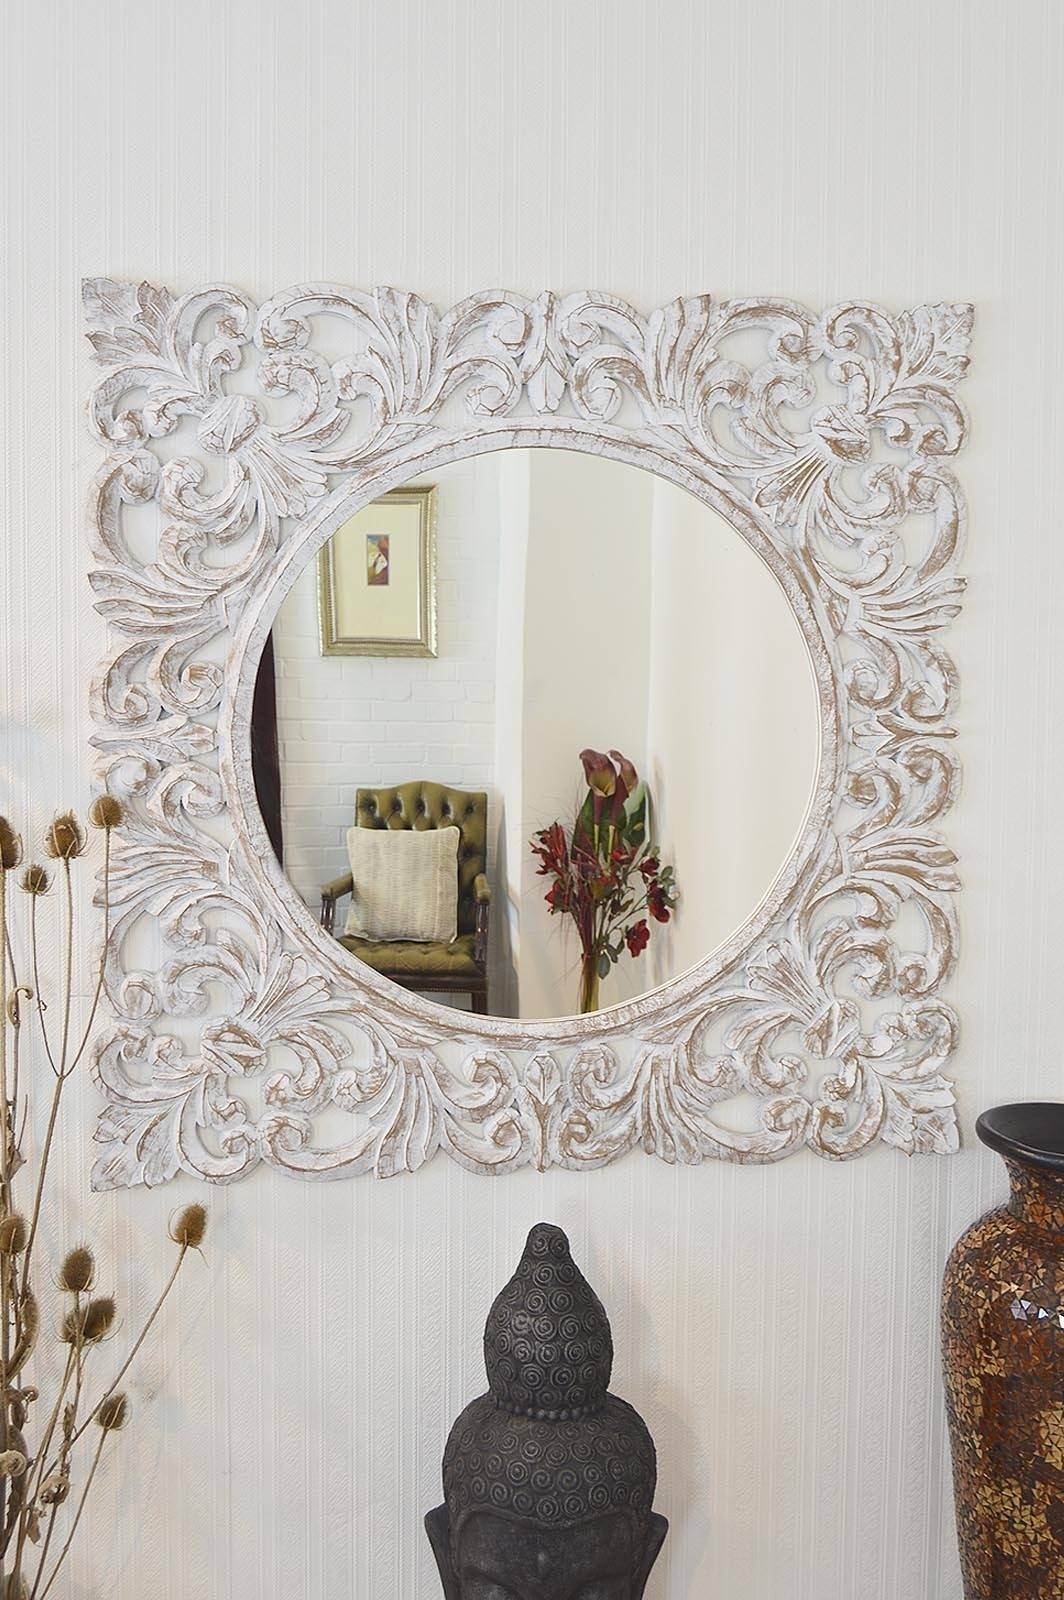 Mirror : 8 Beautiful Large Ornate Mirrors Lotusep For Large White In Large White Antique Mirrors (View 5 of 15)